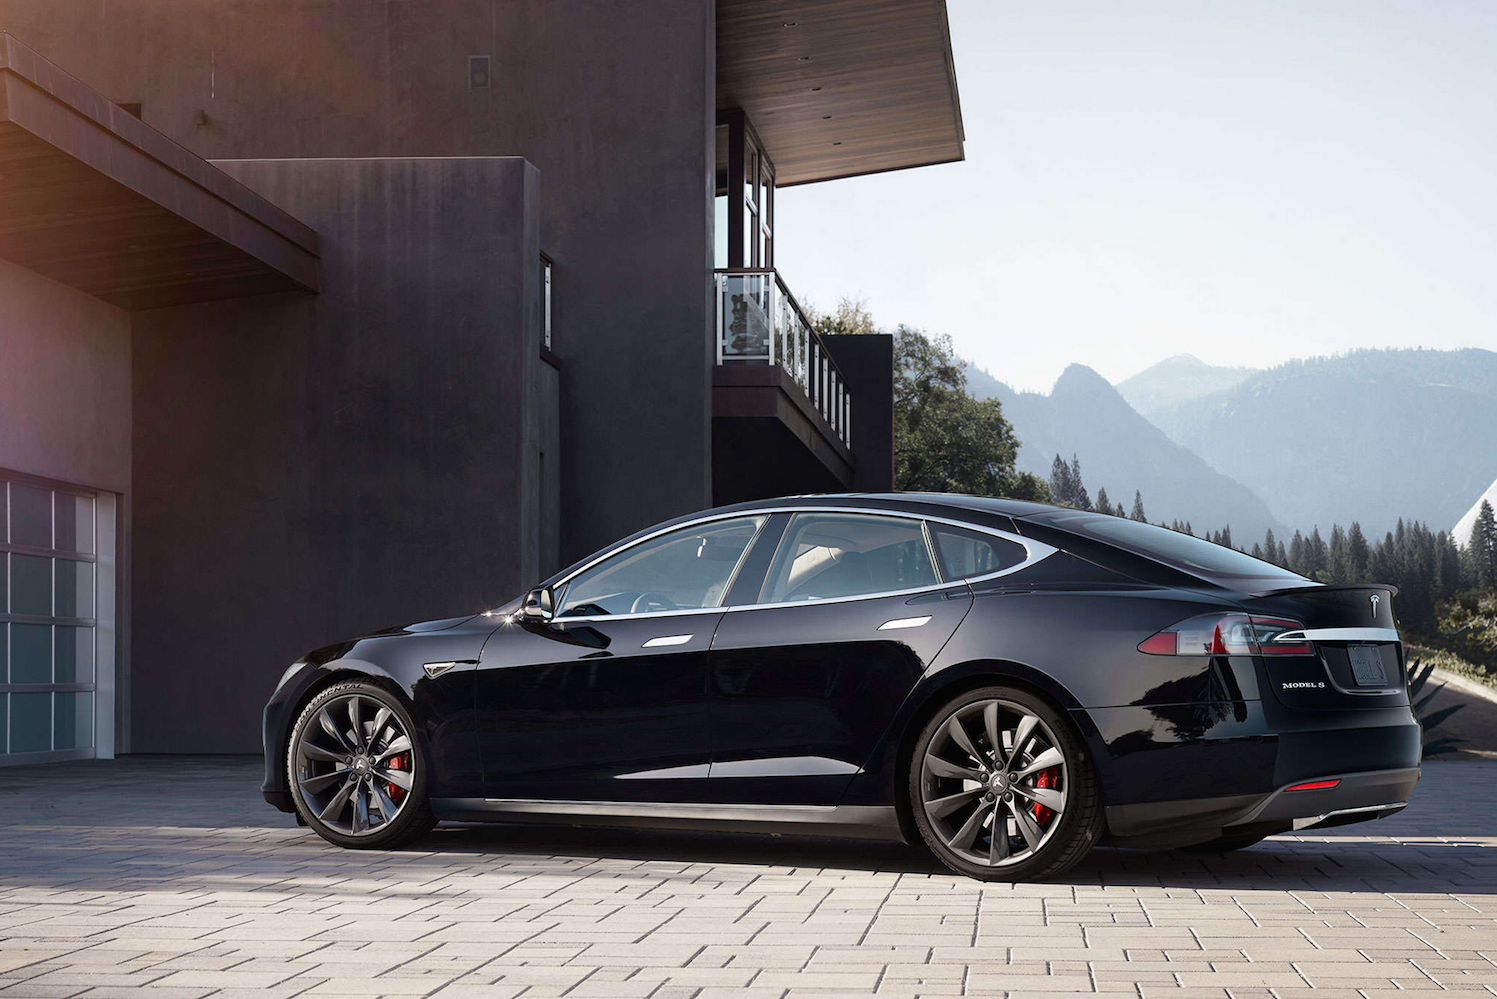 musk claims a tesla with a 600 mile range will be available by 2017